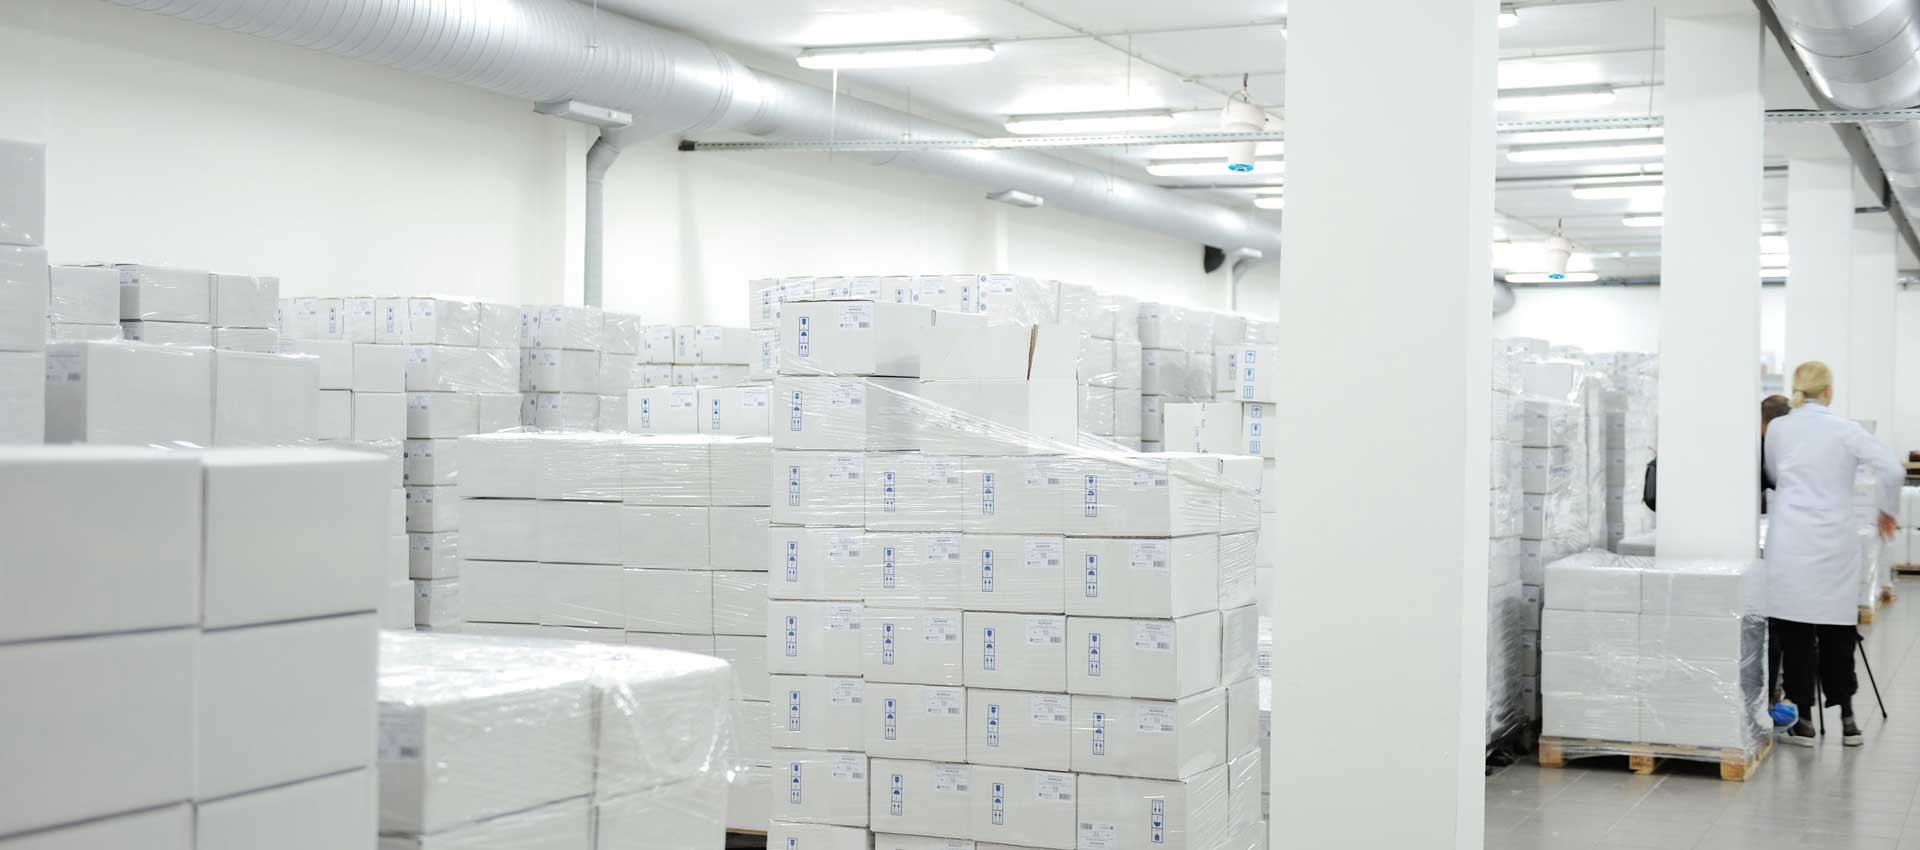 Airius PureAir PHI Air Purification System Installed In Pharmaceutical Warehouse